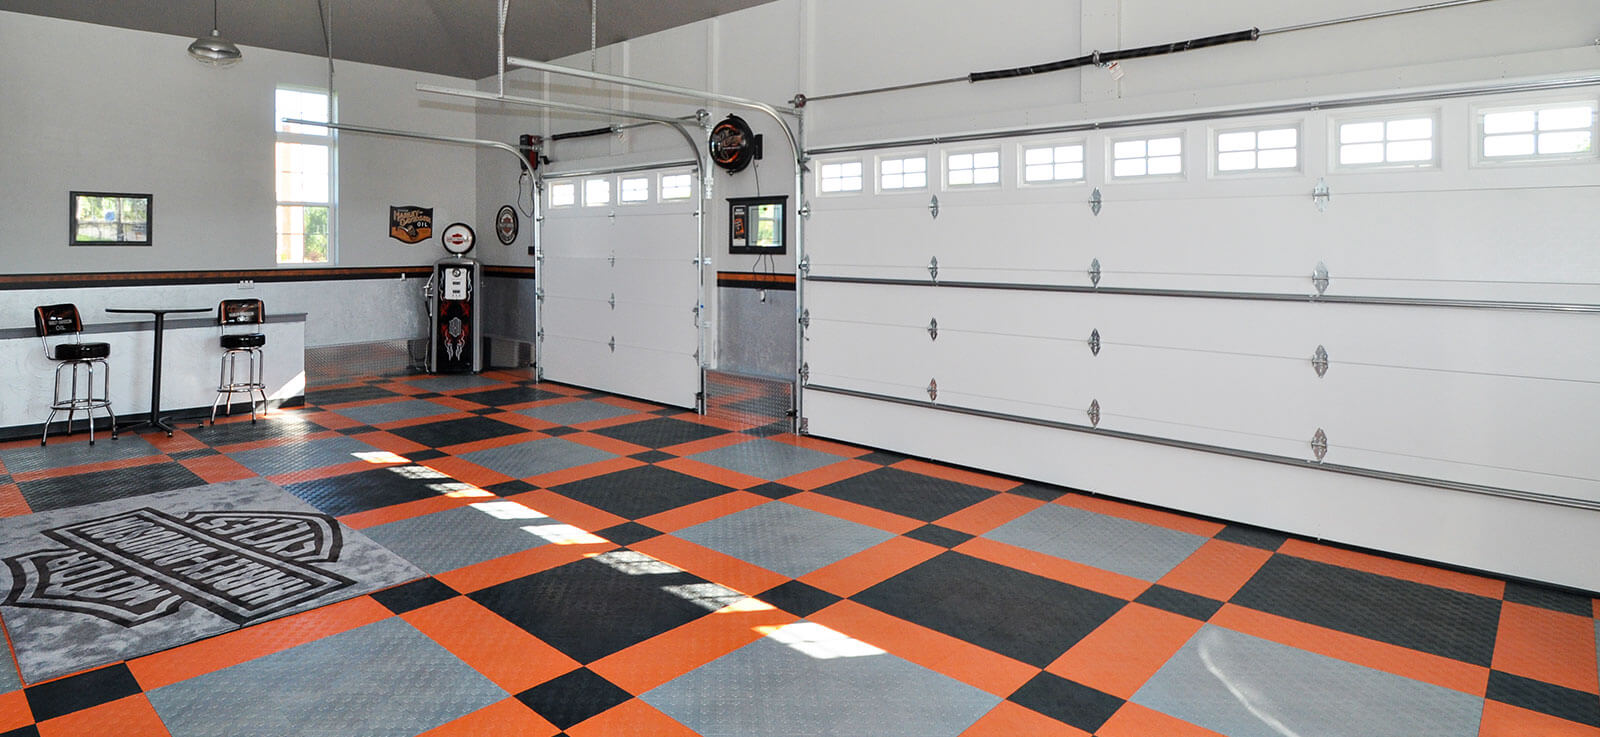 Davidson garage flooring harley davidson garage flooring dailygadgetfo Choice Image